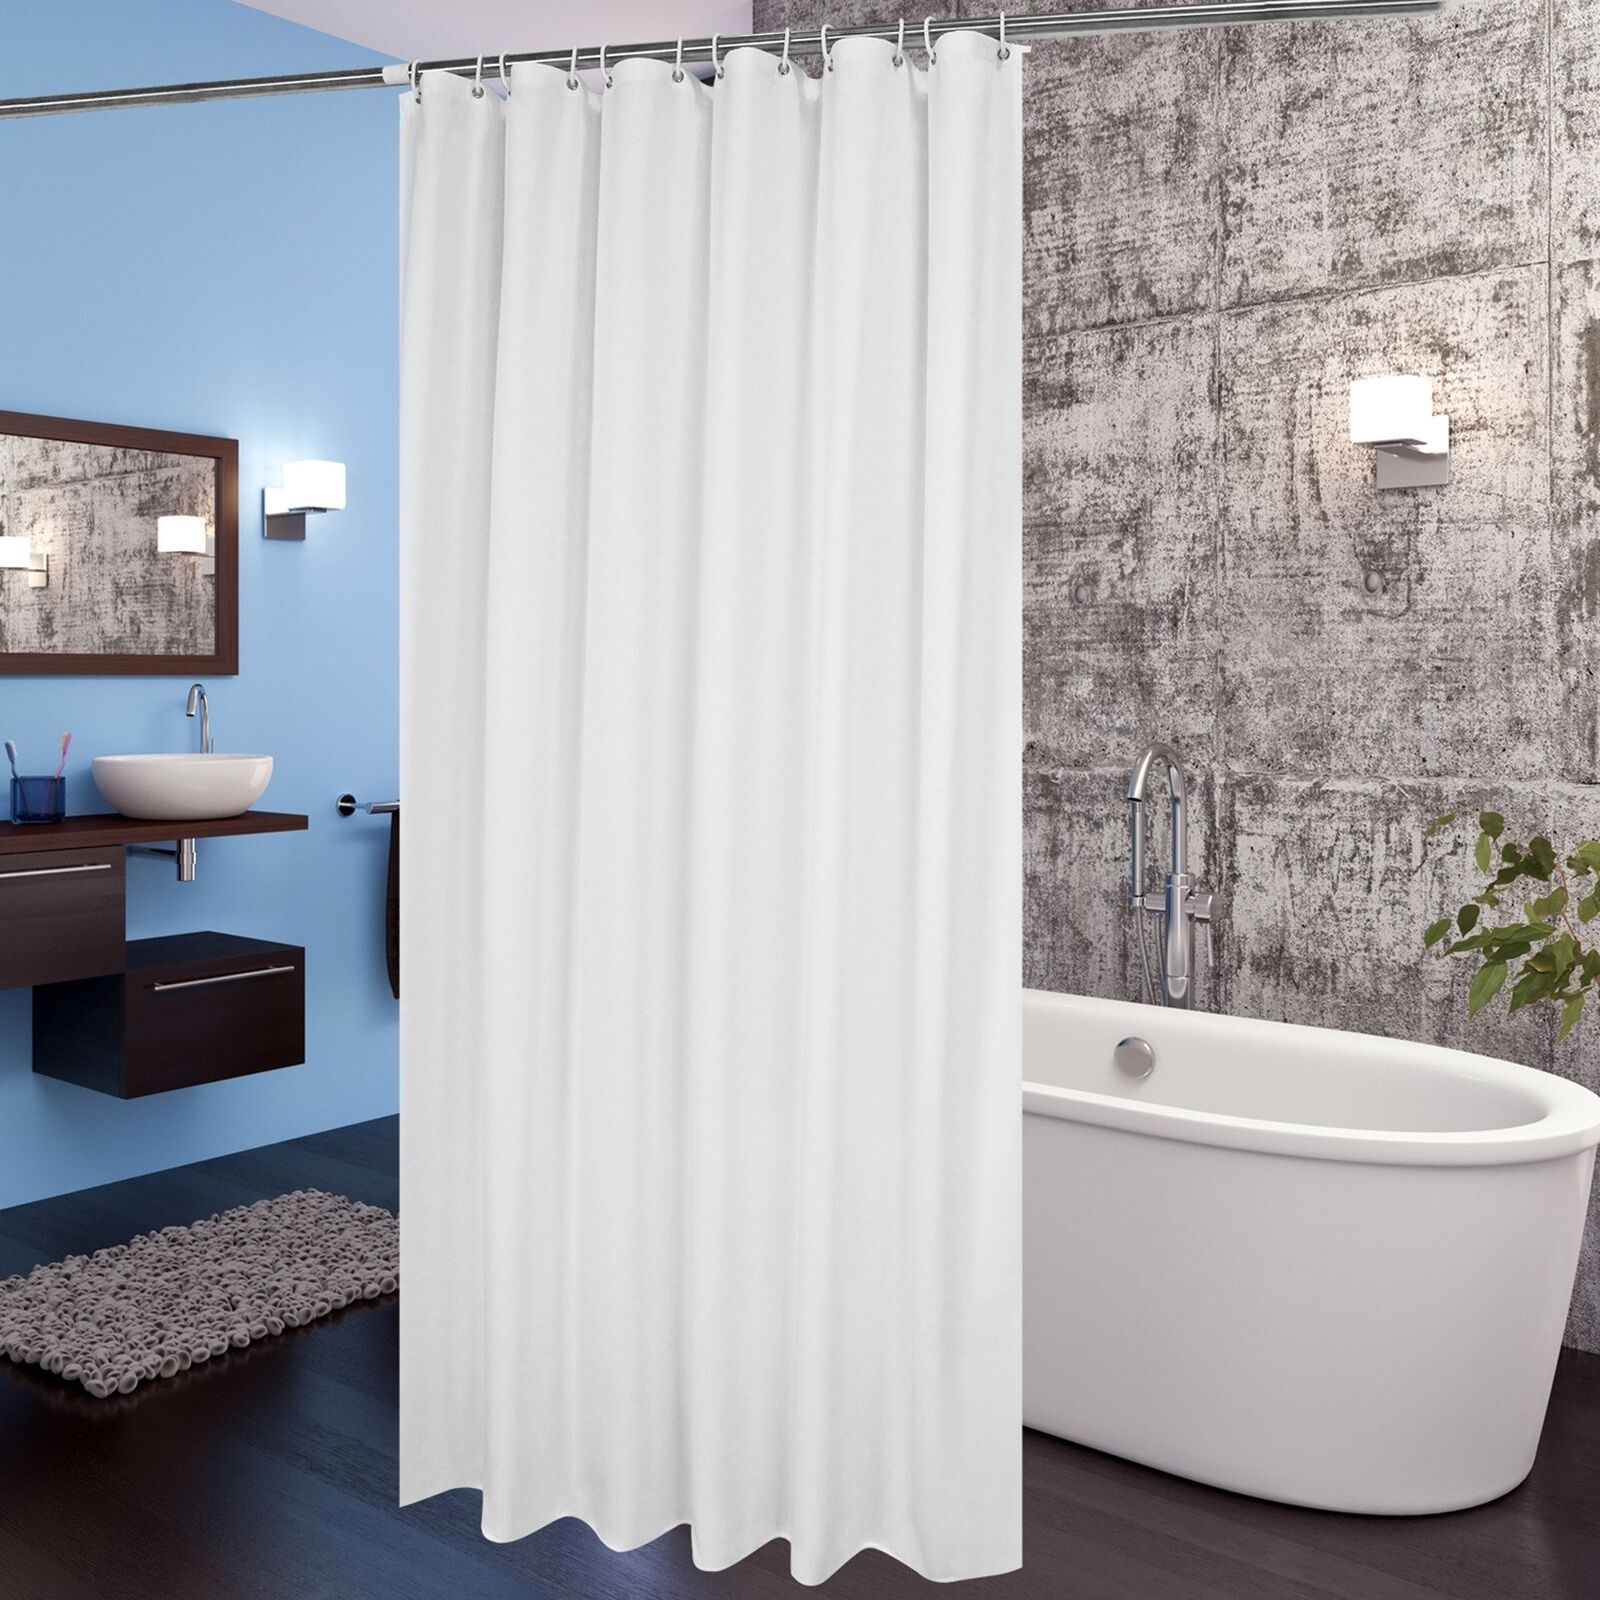 "AooHome Hotel Liner Fabric 72/"" x 75/"" Dark Grey Standard Shower Curtain with Hook"